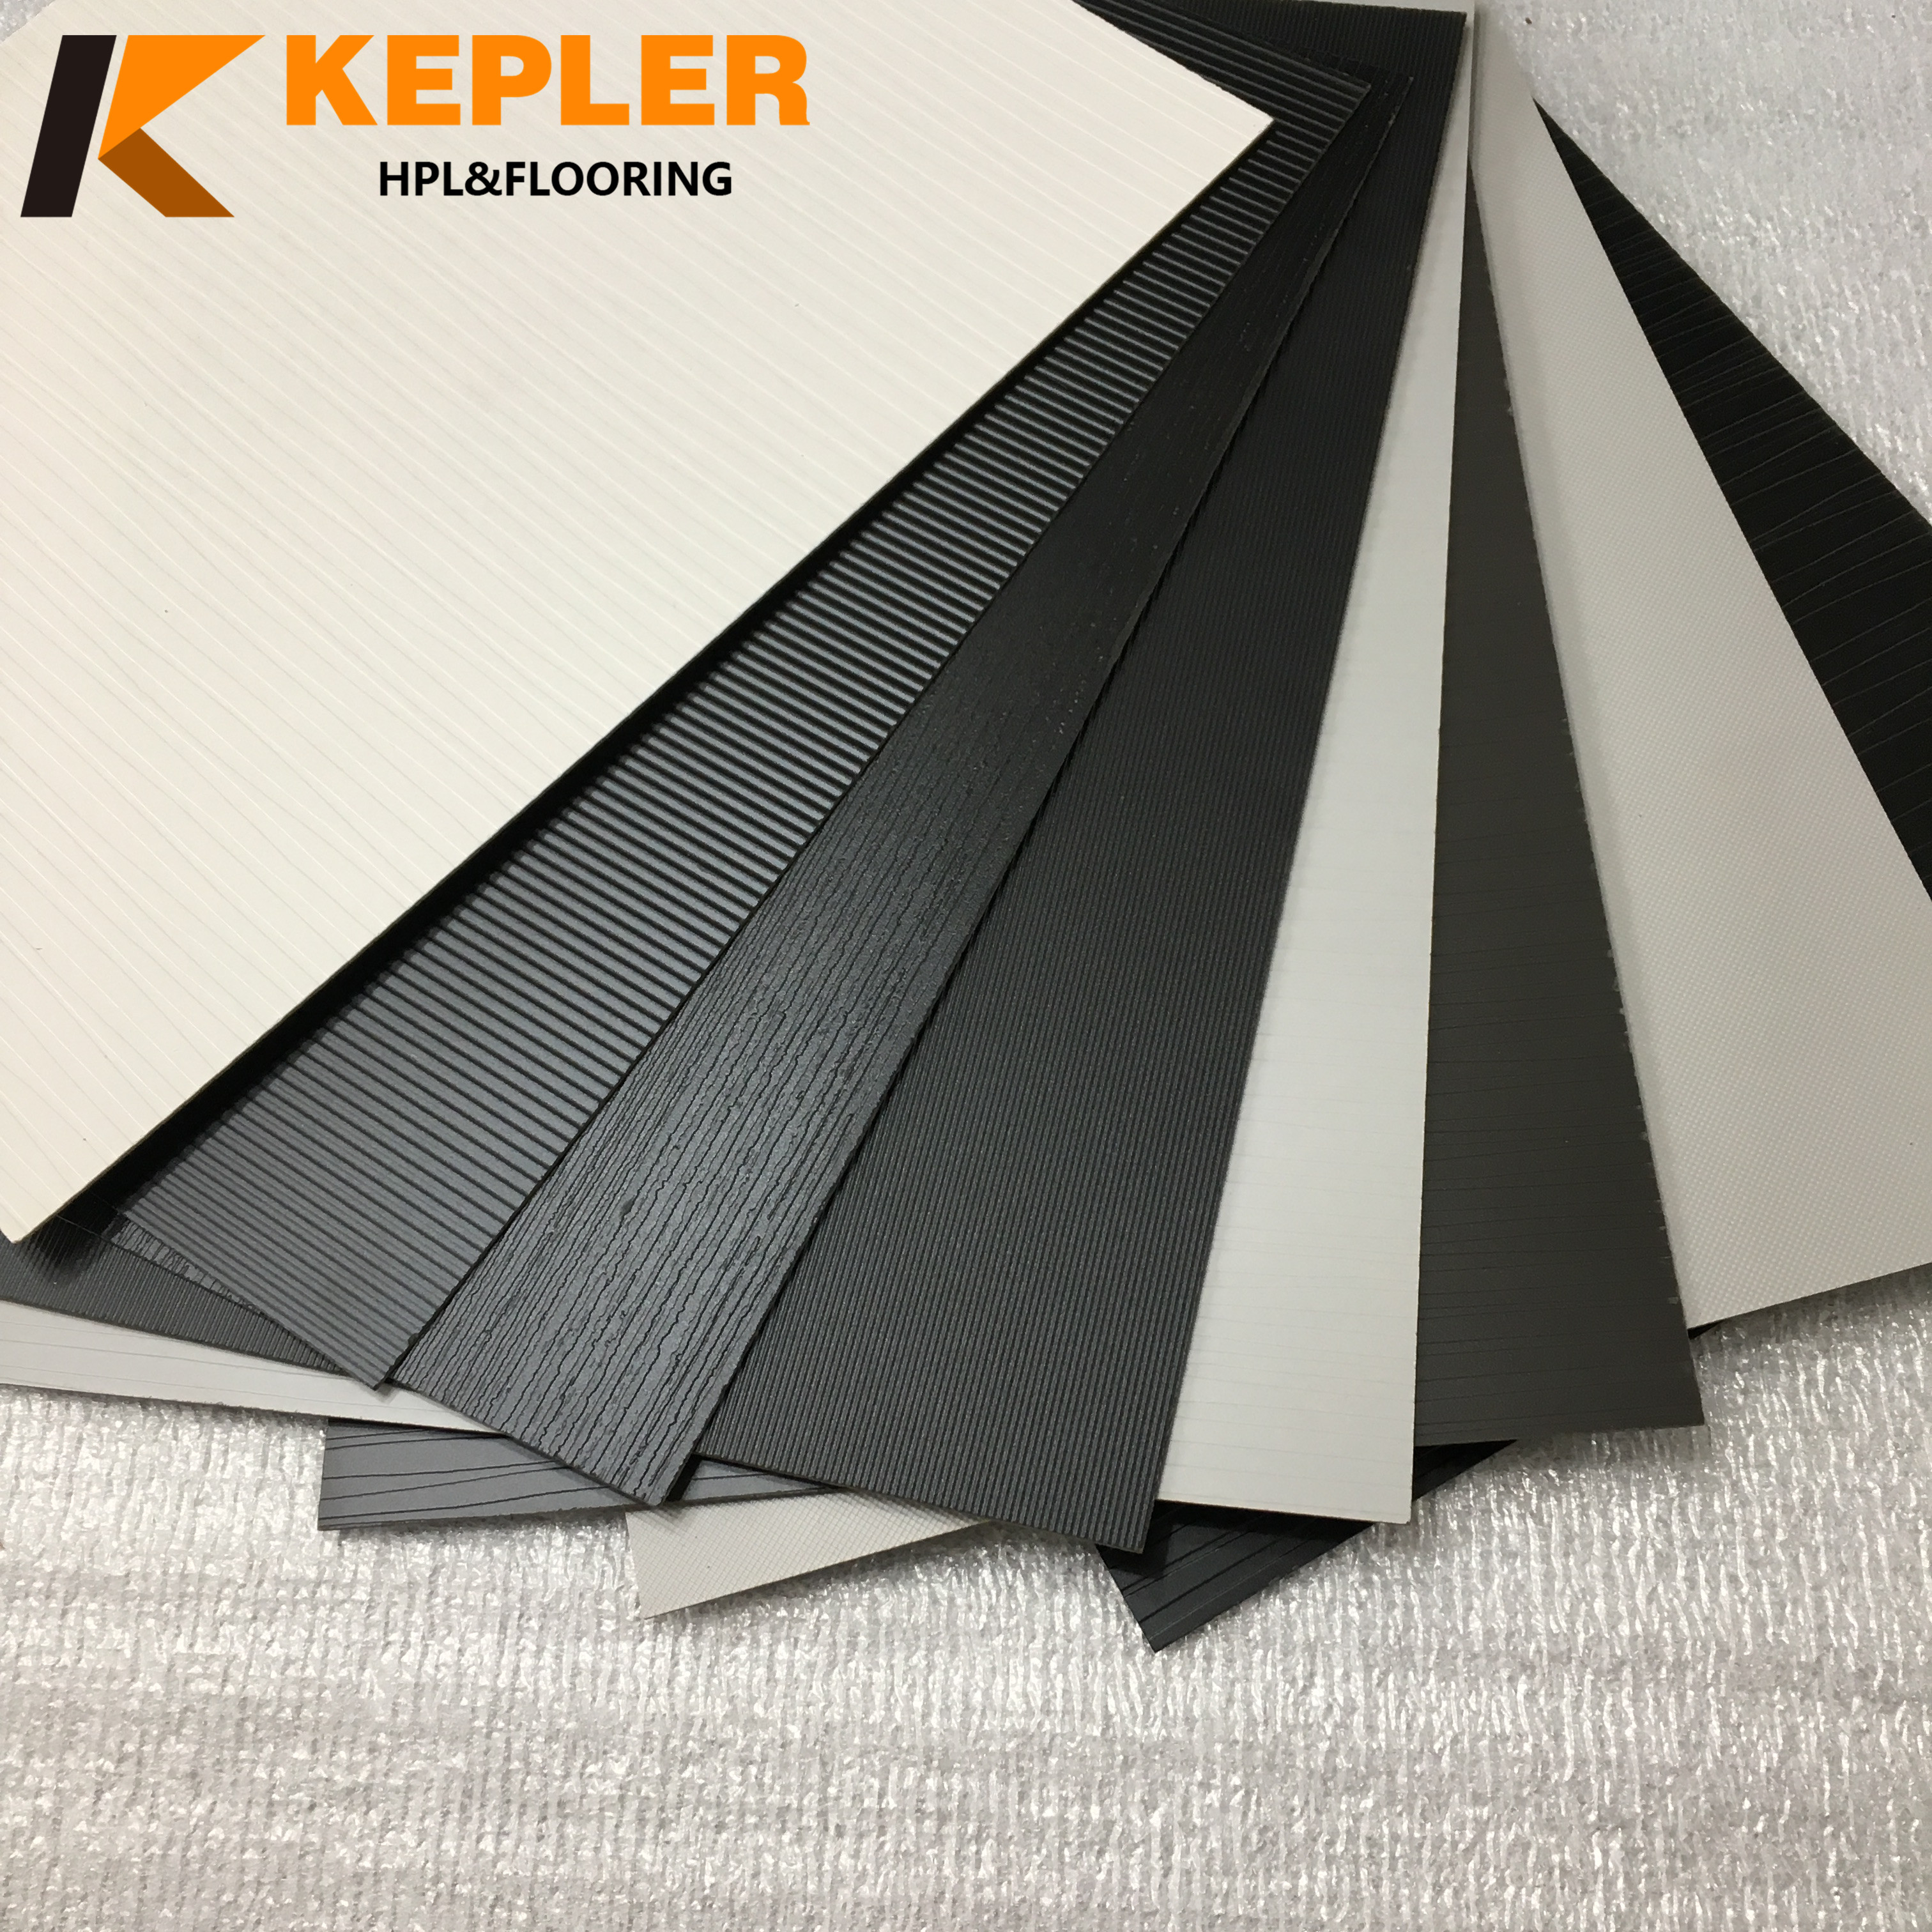 Kepler 0.7mm 0.8mm High Pressure Laminate Sheet